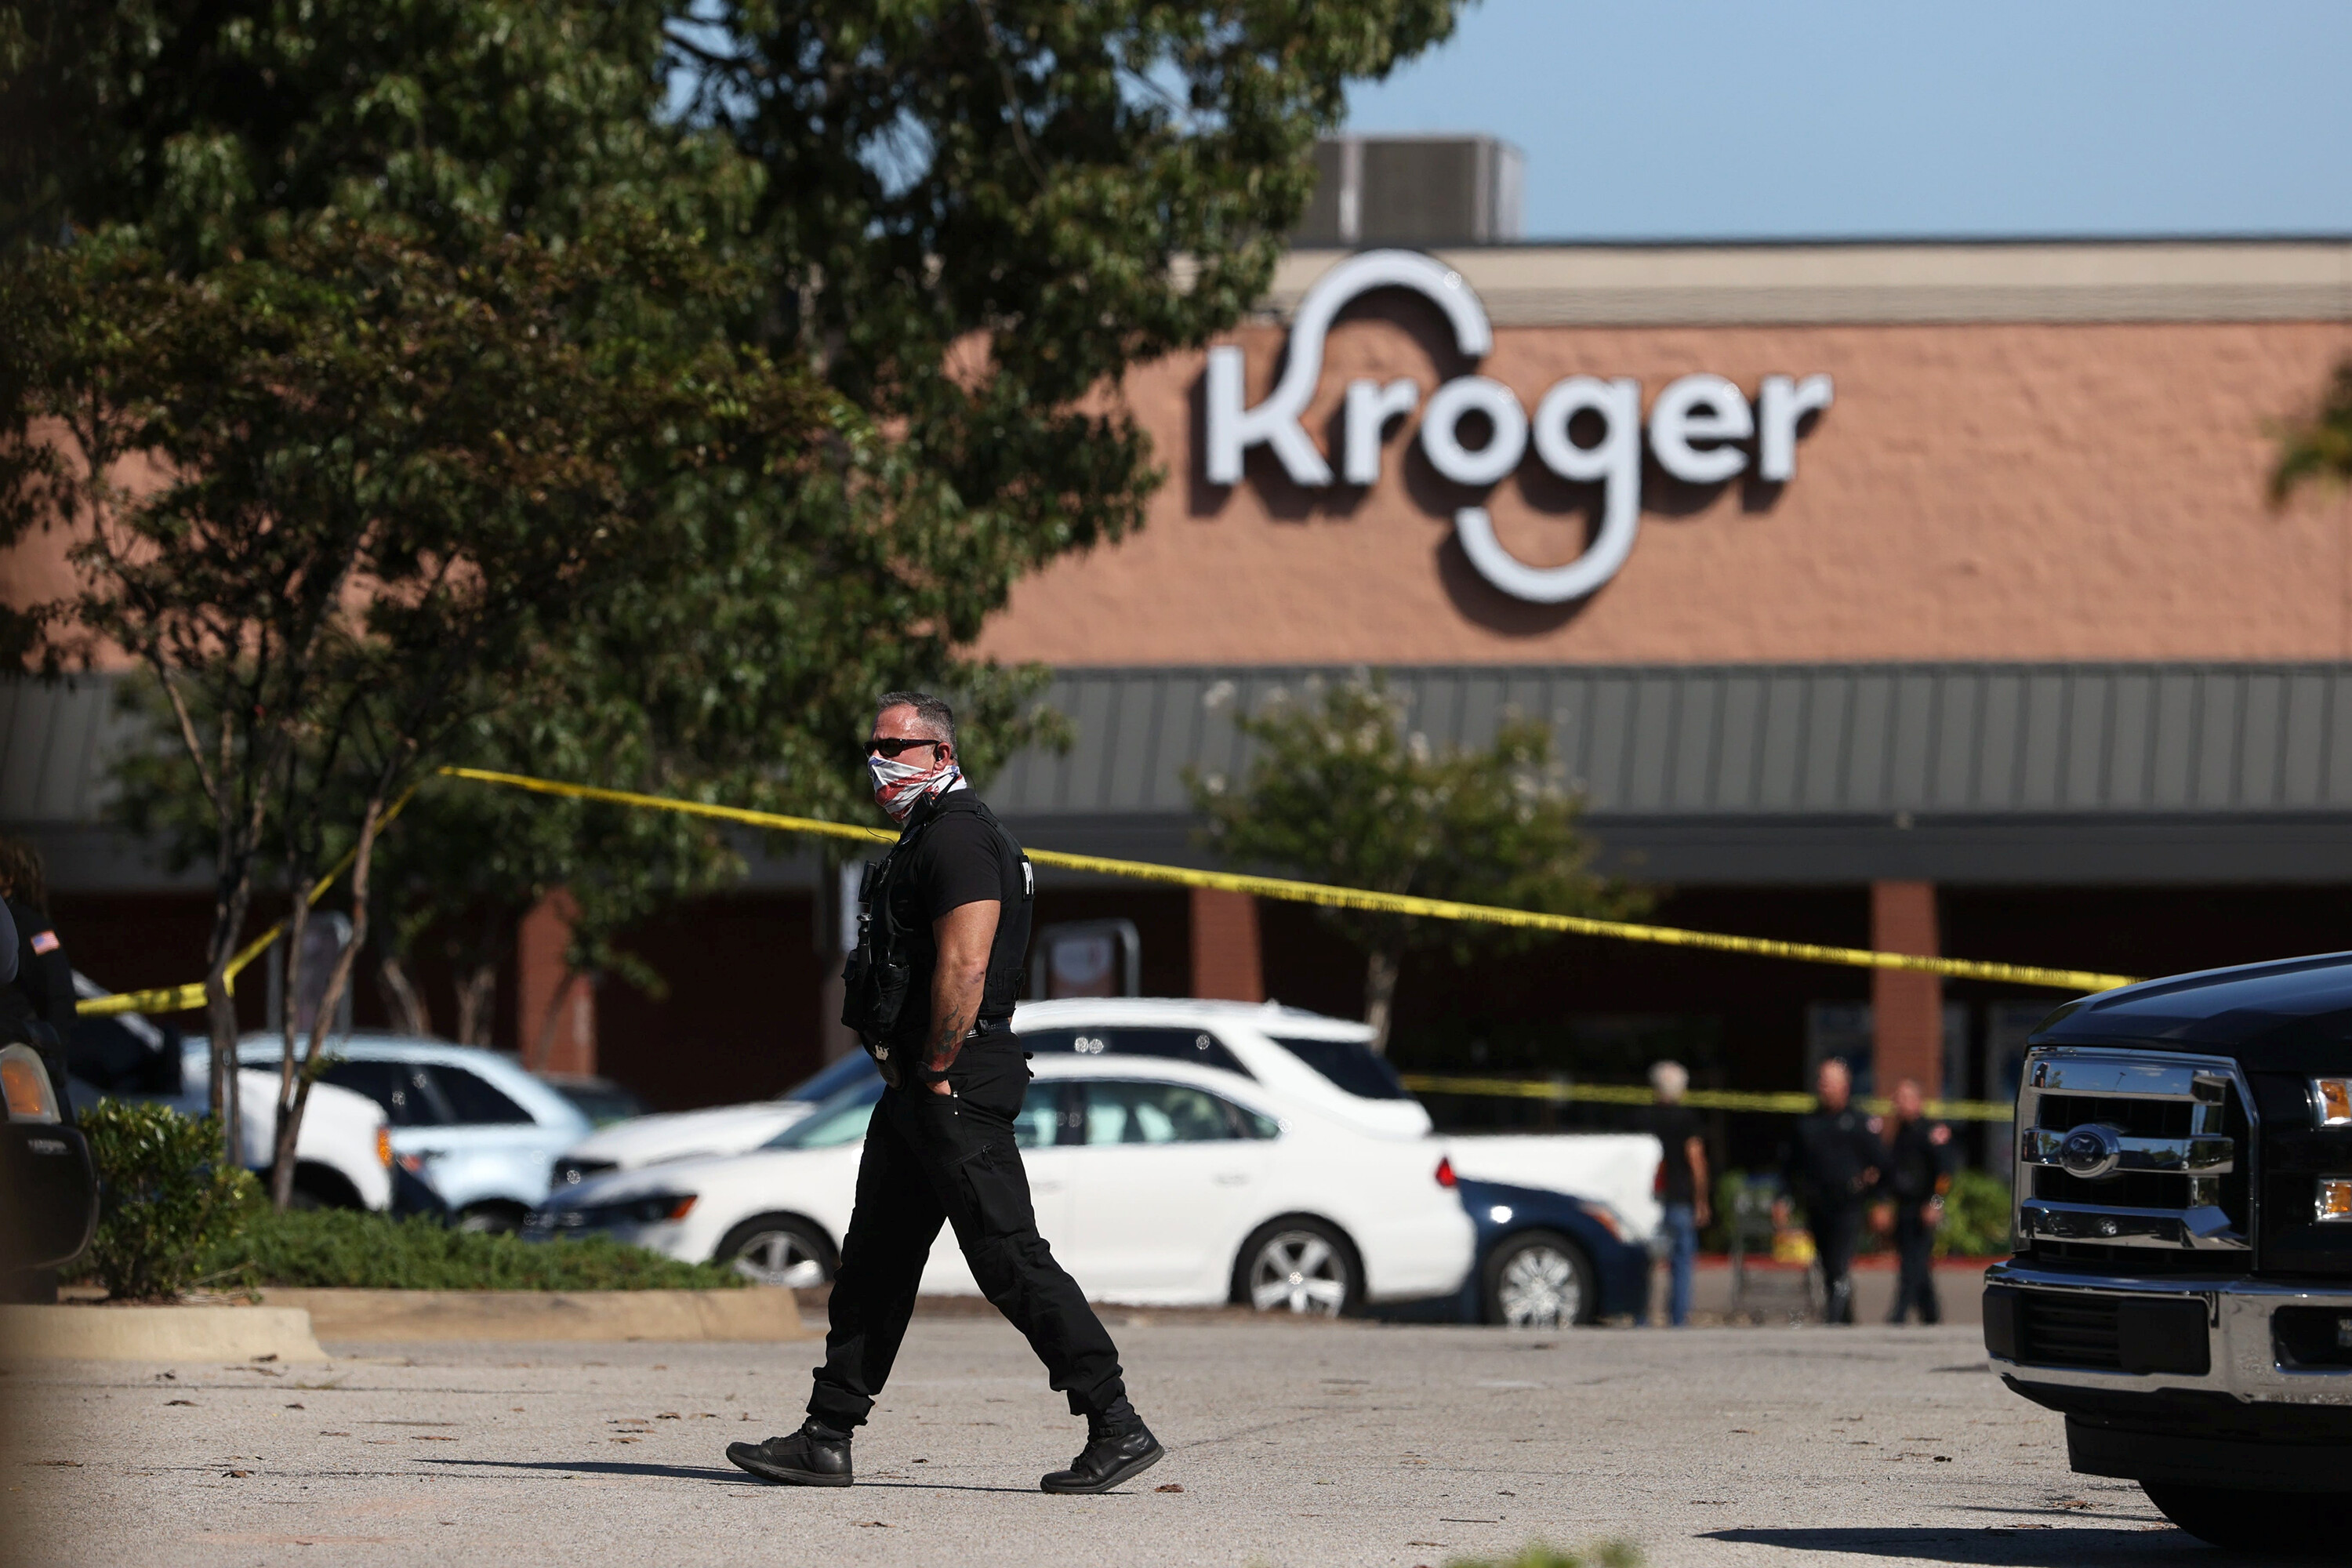 Man who opened fire in Tennessee Kroger was asked to leave his job the morning of the incident, police say